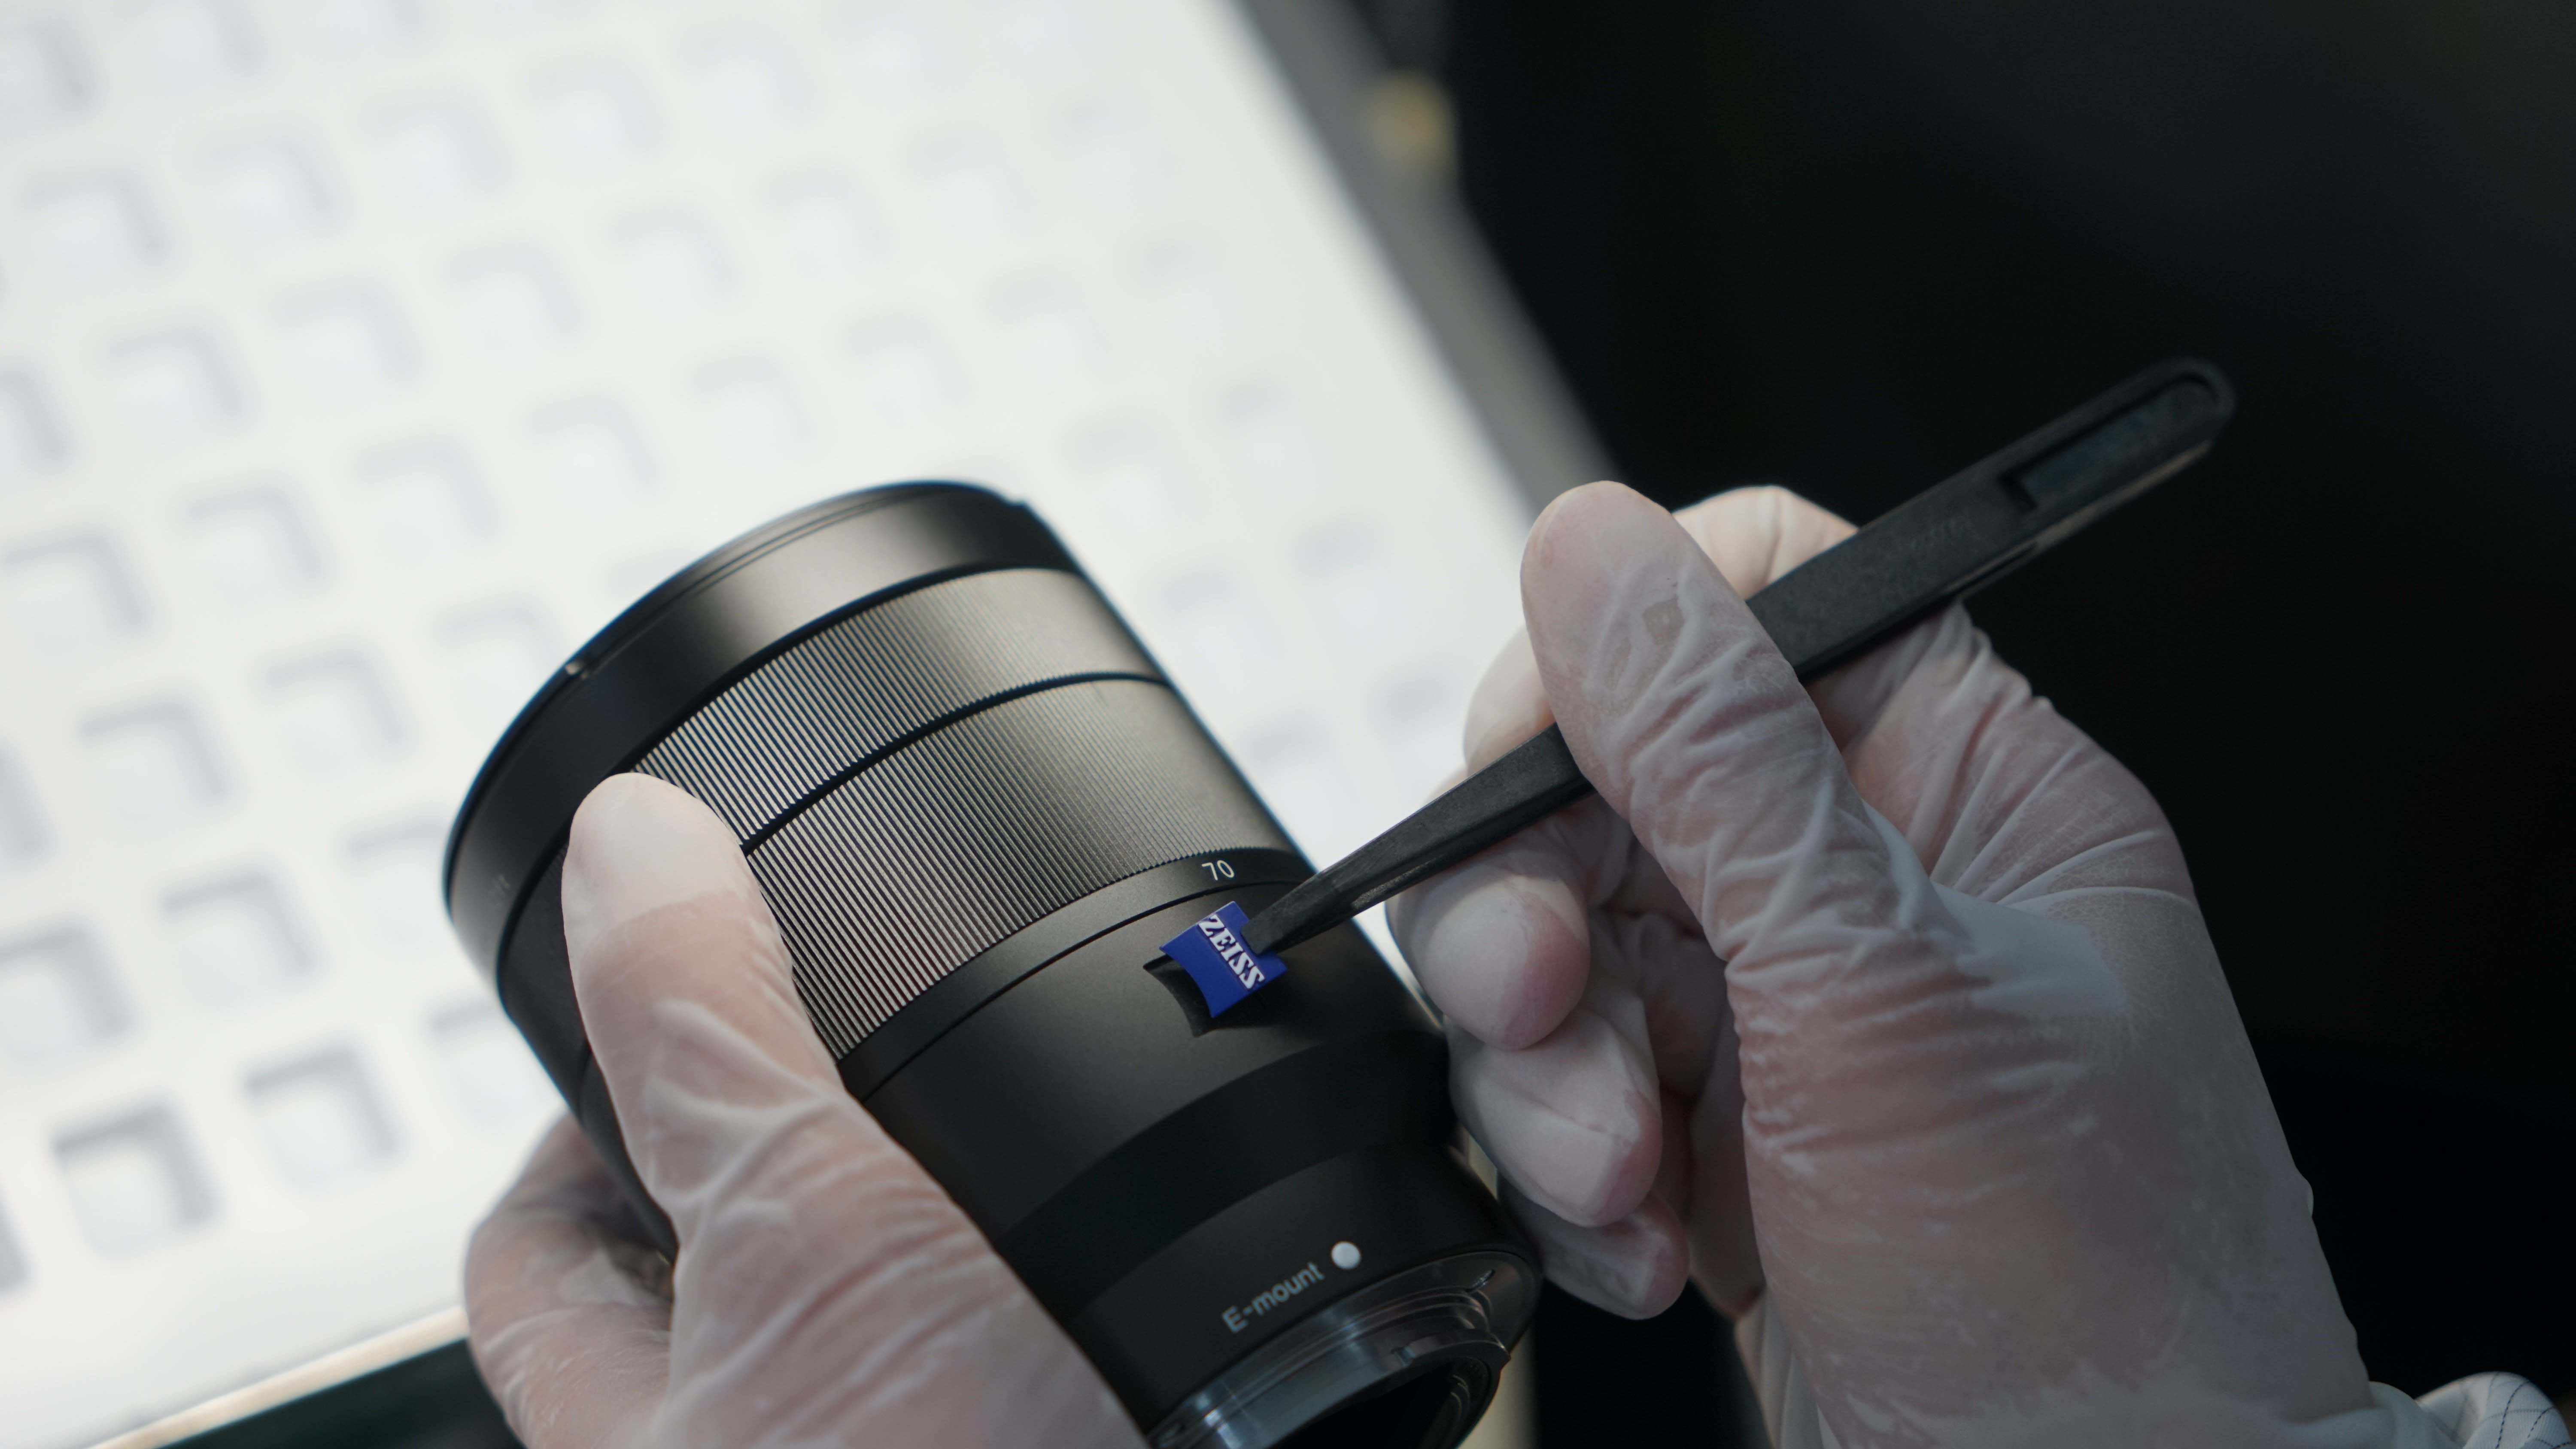 What's in a name? Zeiss provides details on lens